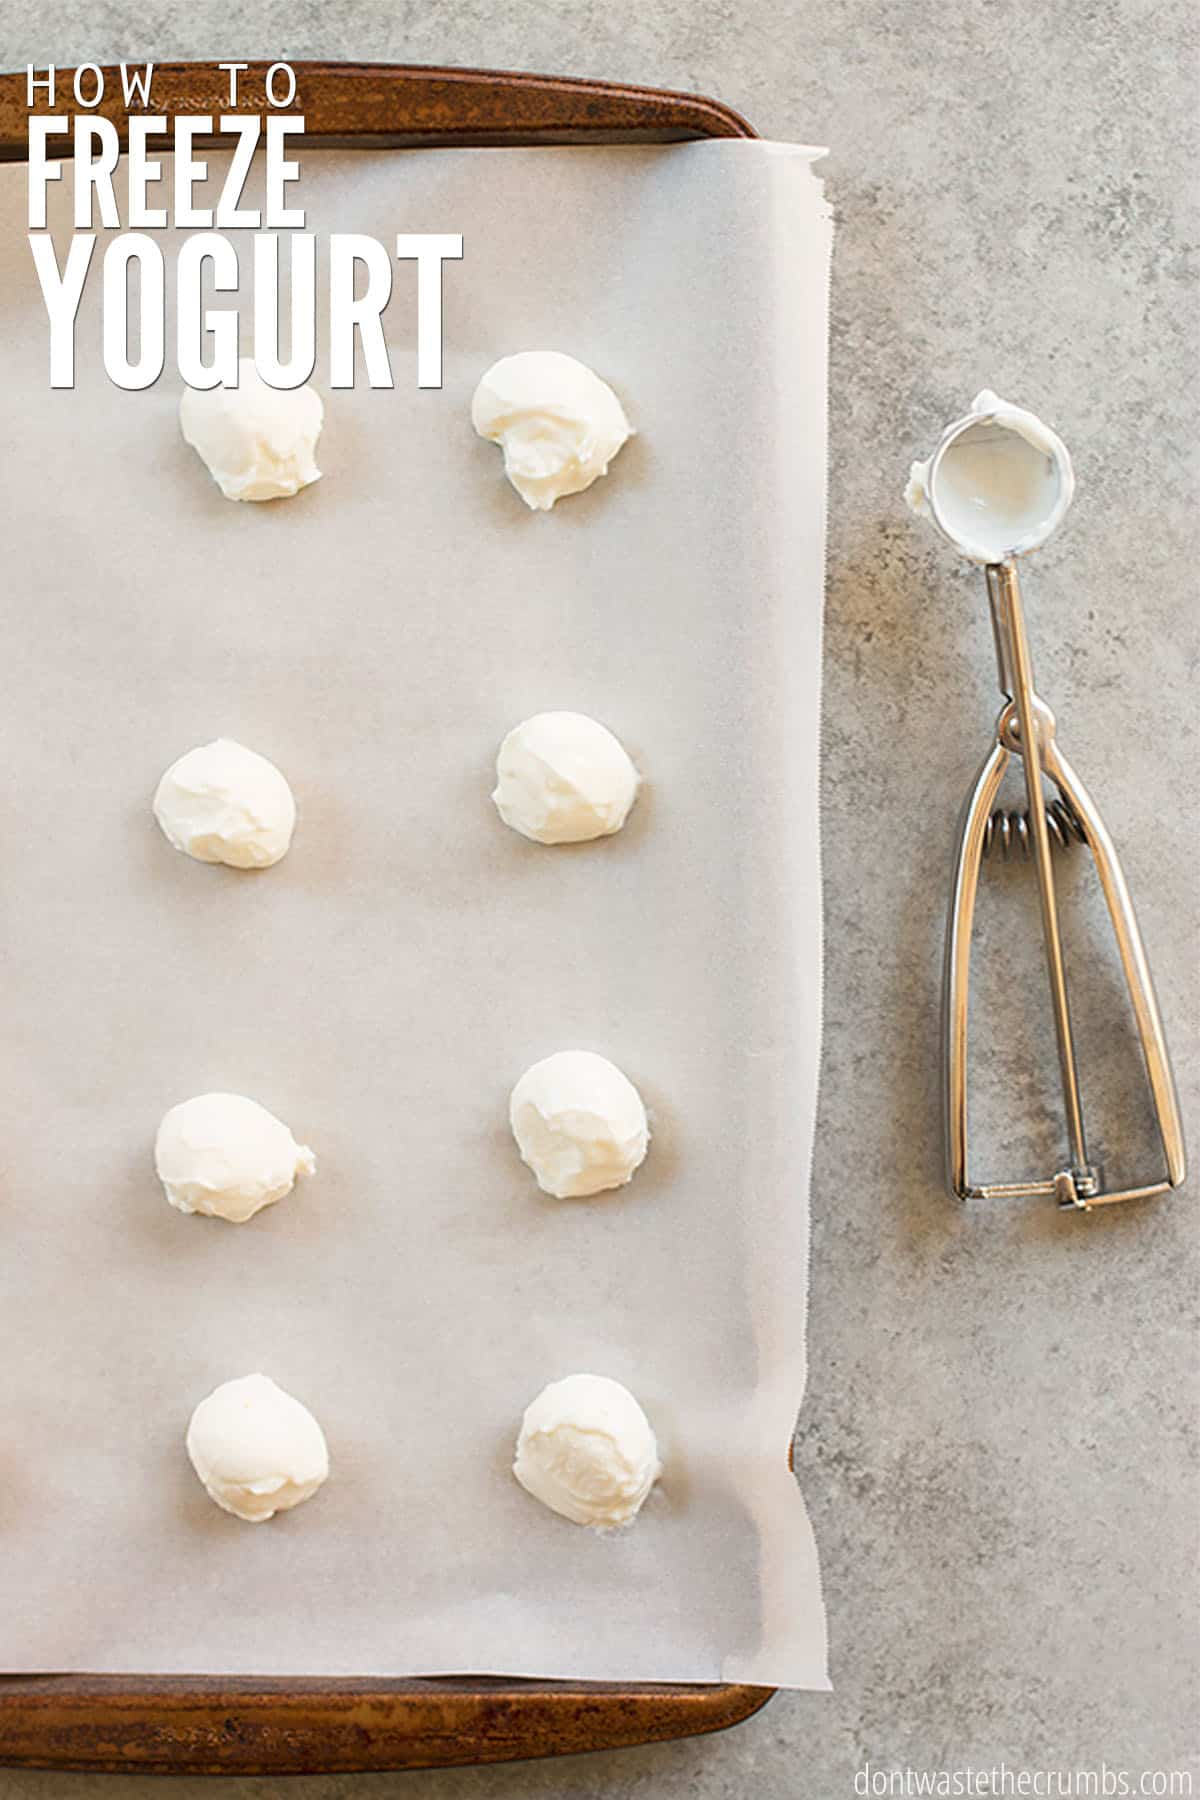 Stone cookie sheet, covered with white parchment paper with eight scoops of white yogurt. Text overlay How to Freeze Yogurt.